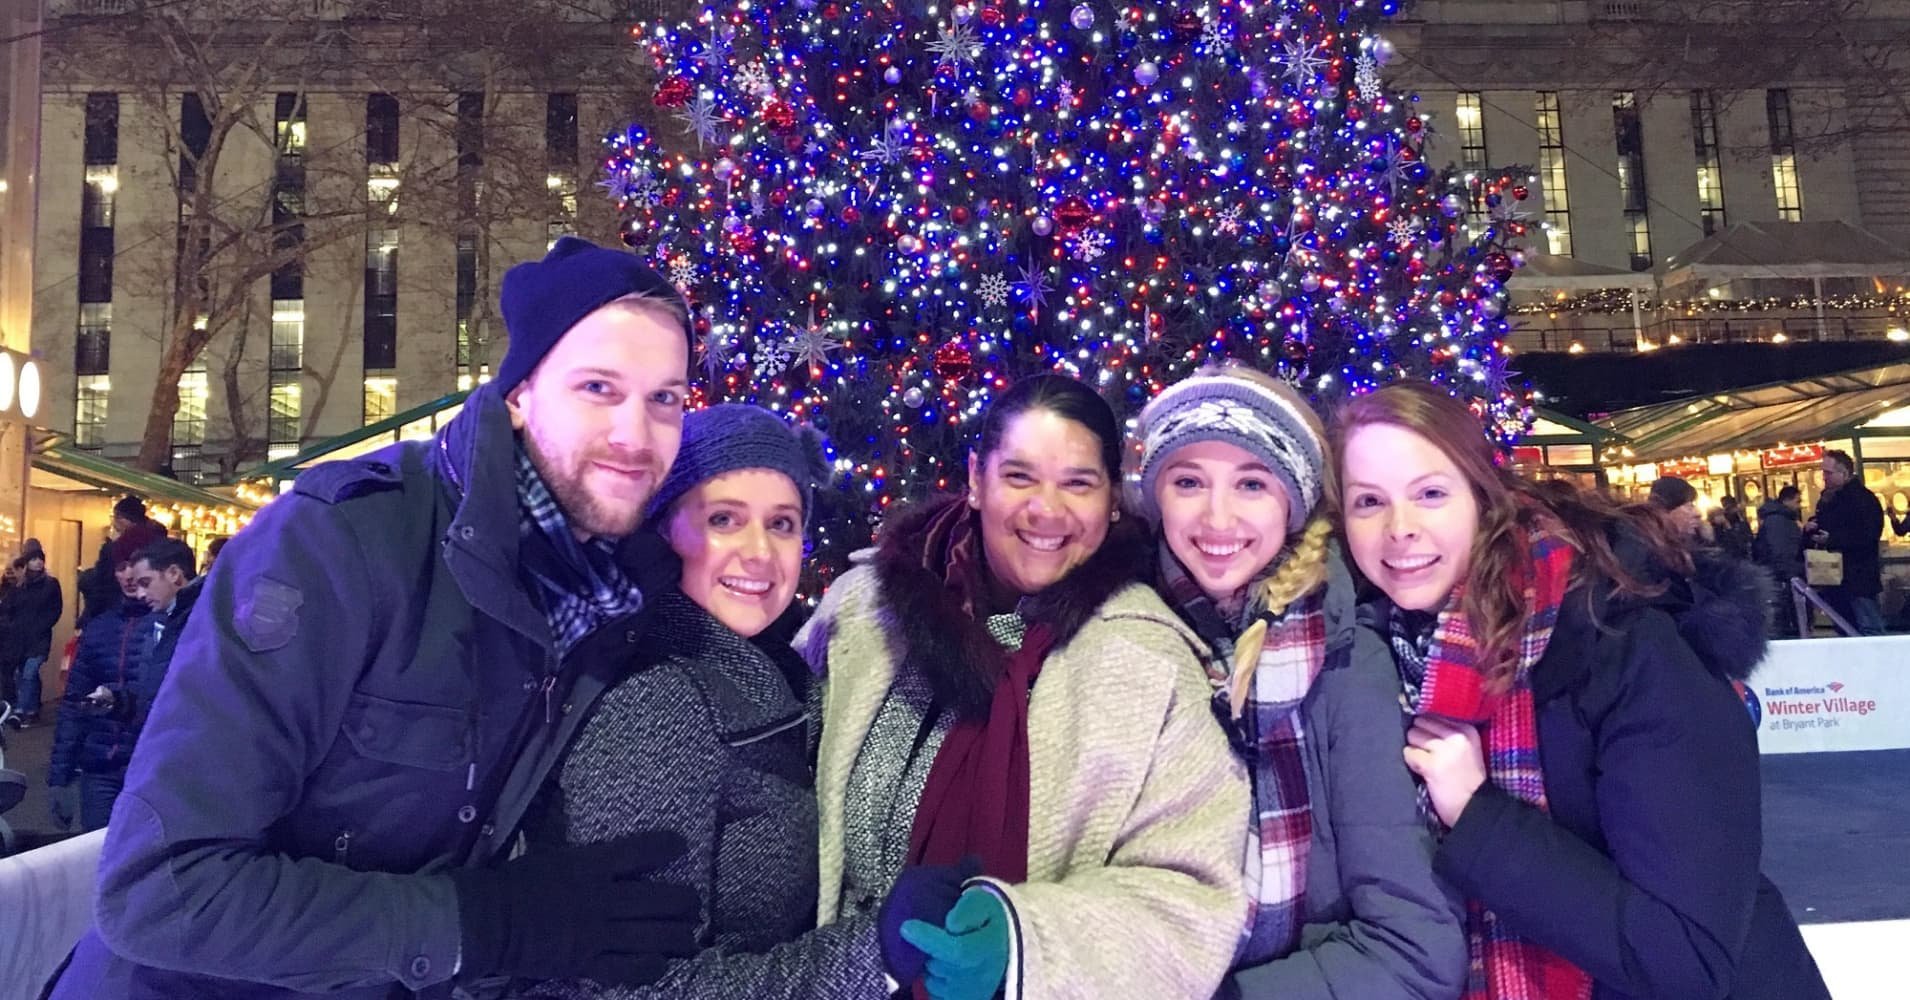 The author (far right) and friends ice skating at Bryant Park in 2017.